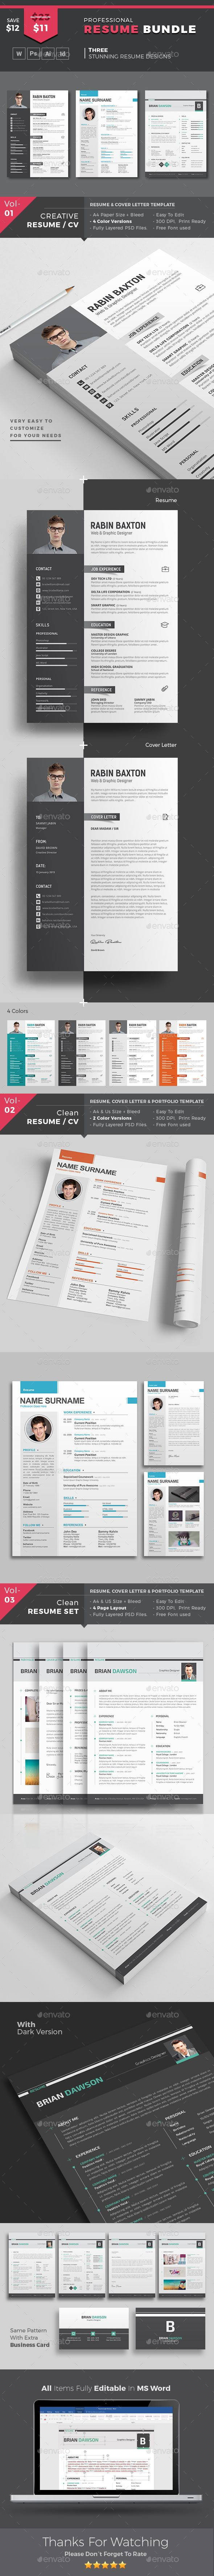 bartender job description resume%0A MS Word Resume Template Bundle   Super Saver   PSD   AI   INDD IDML